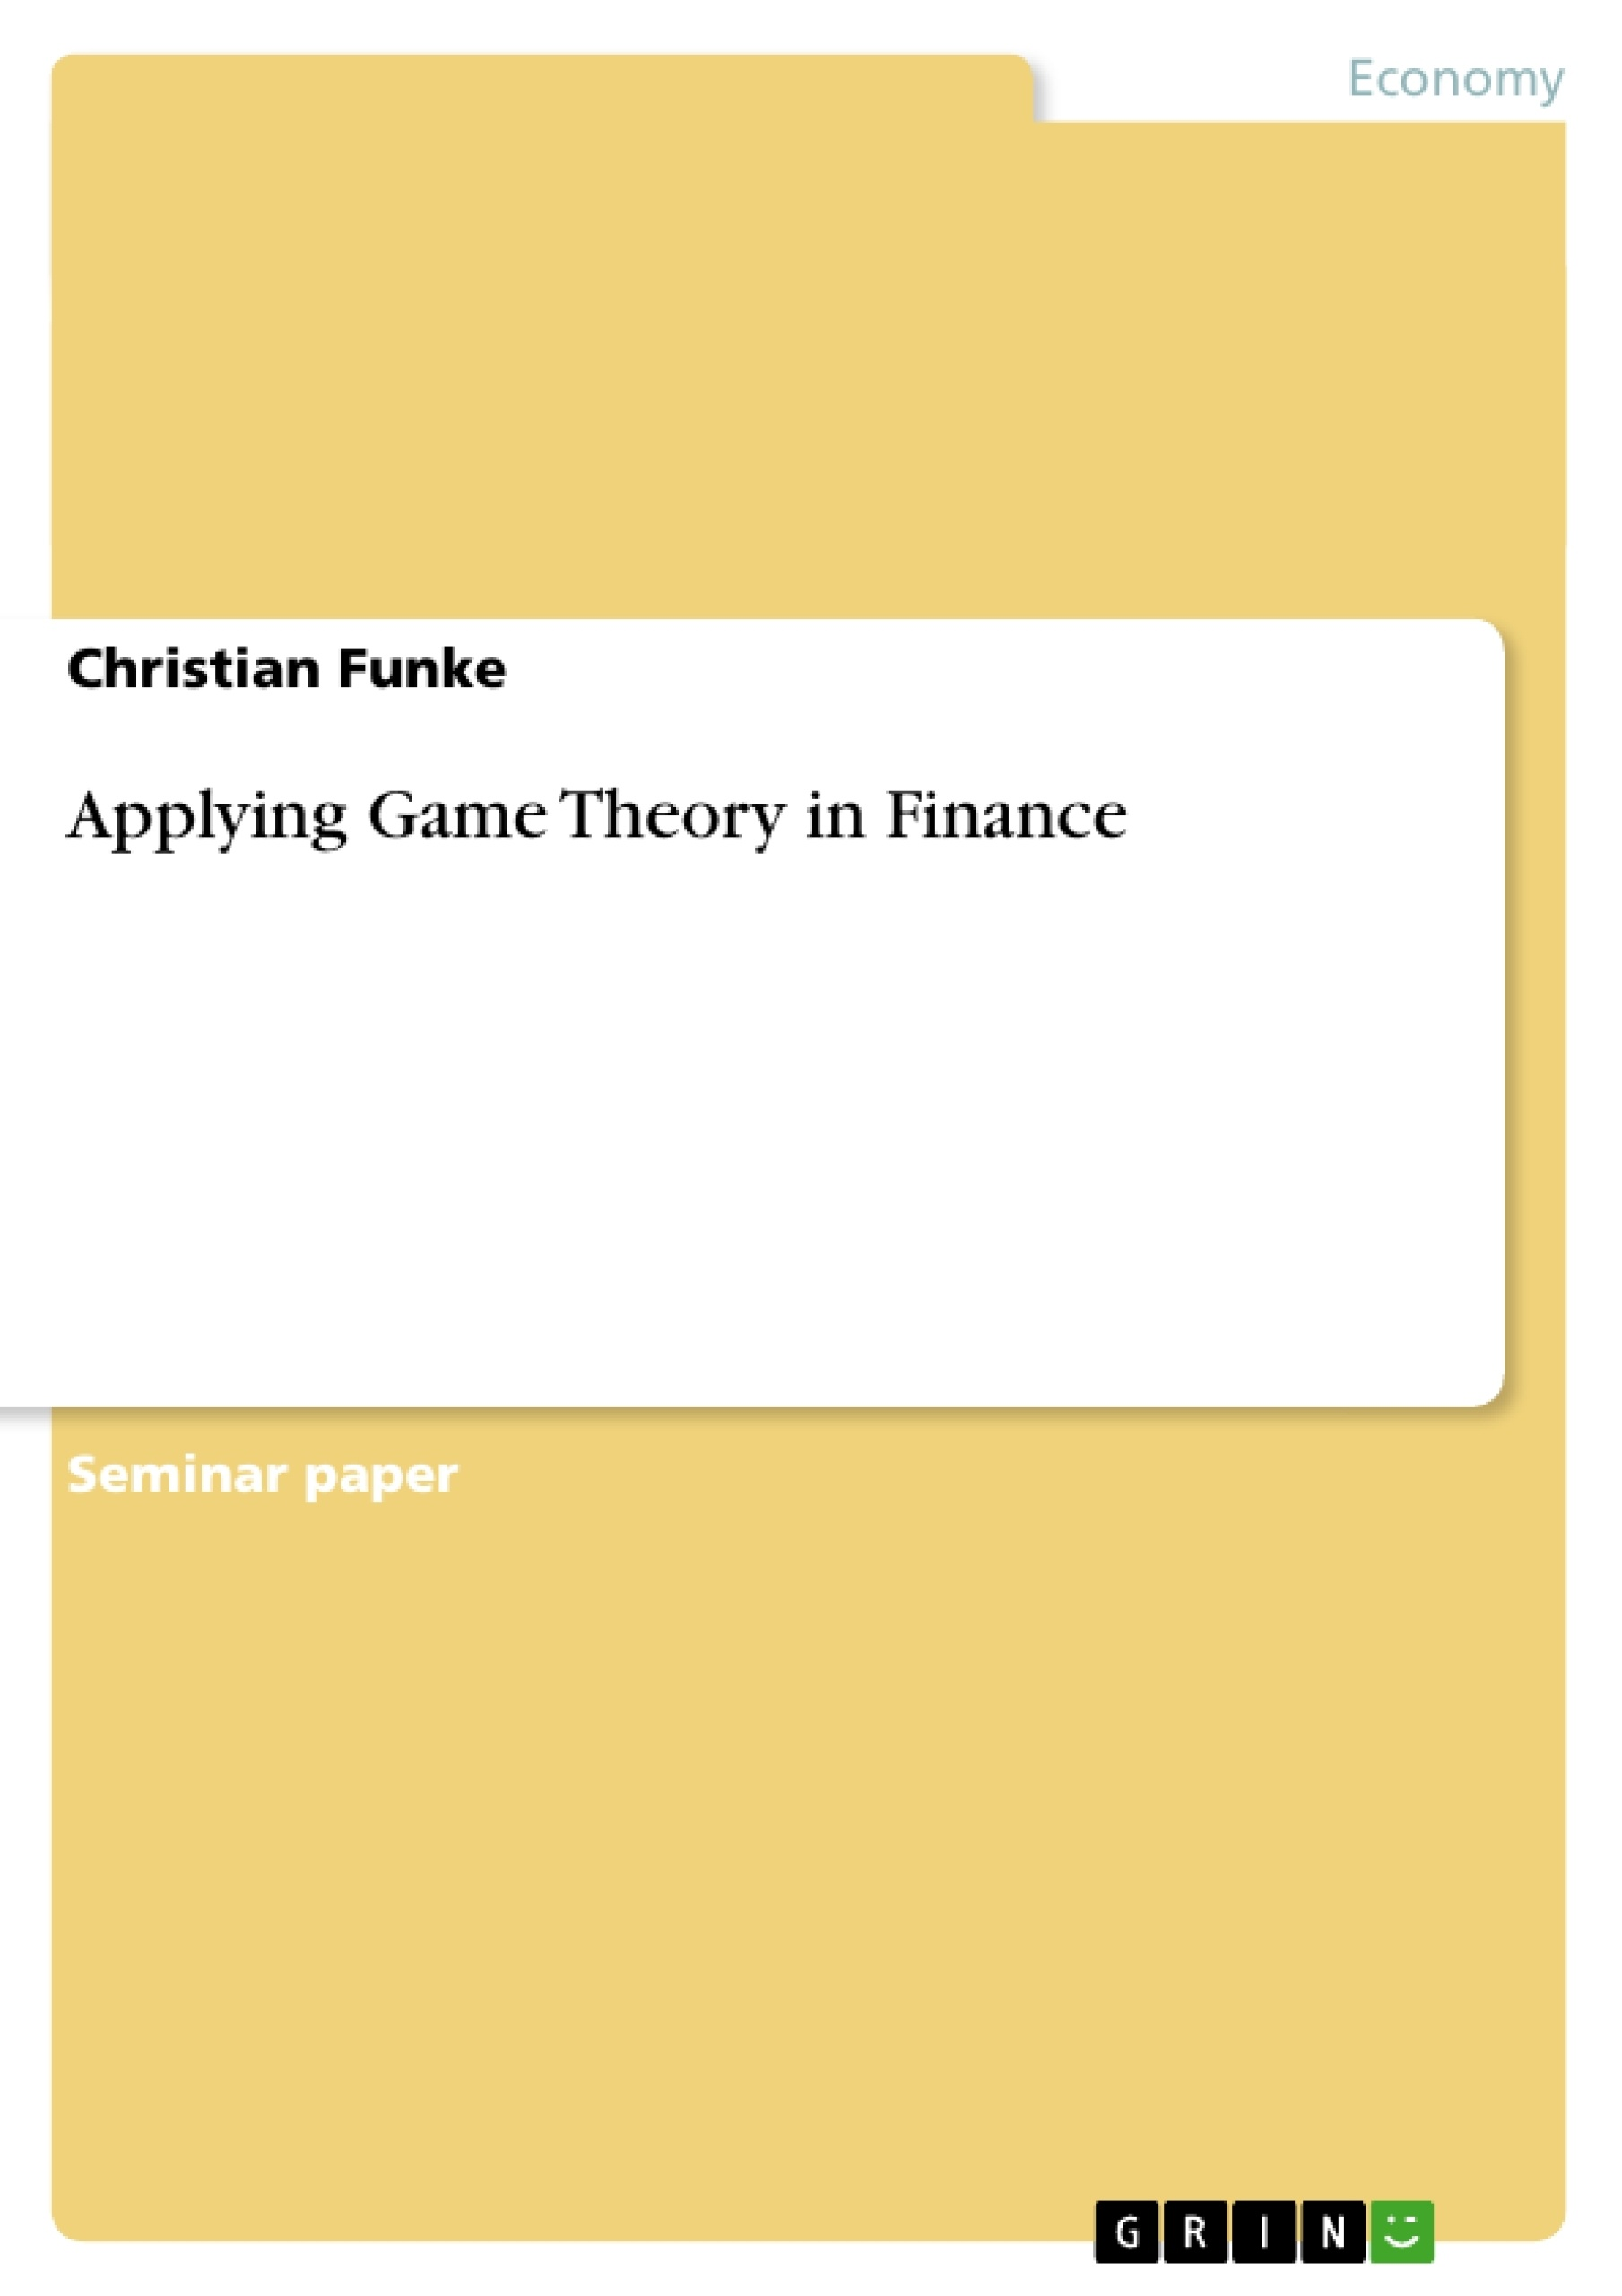 Title: Applying Game Theory in Finance